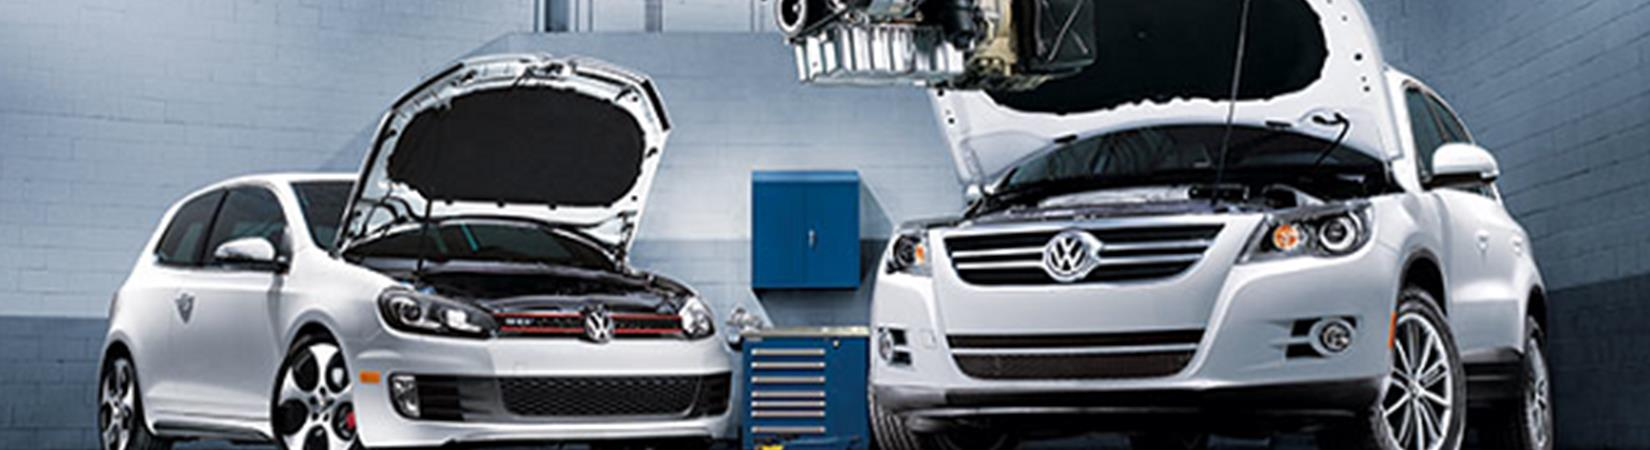 VW Service, Volkswagen Service Department, Service Specials, Oil Change, Alignment, Detailing, Spa, KM Services, Scheduled Maintenance, Owasco VW, Volkswagen, Volkswagens for Sale, Whitby, Oshawa, Bowmanville, Ajax, Pickering Clarington, Dealership, Deals, Sales, Jetta, Golf, Tiguan, Beetle, AllTrack, Sportwagon, GTI, Touareg, Atlas, e-Golf, Durham, Volkswagen Plus, How-To, Good Deals, Best Deals, Cheap, Best Price, Low Cost.